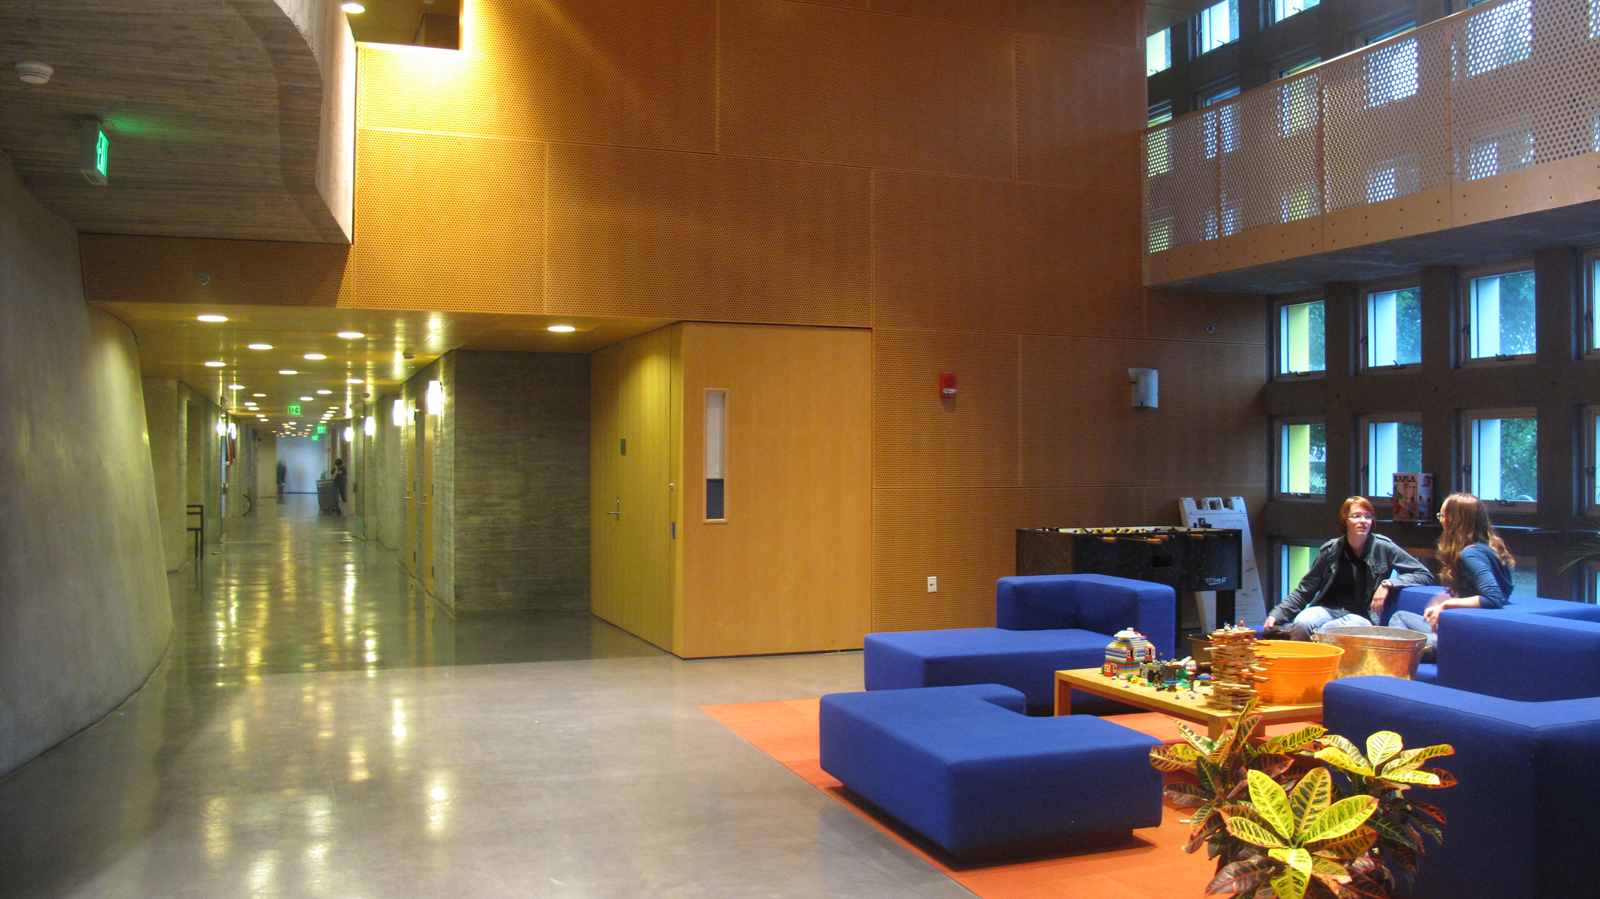 Renee and Amanda chat in the Simmons mail room, which is also the lobby and used as a meeting place. You can see three levels of porosity -- perforated wood paneling, metal overhead railing, and windows in the concrete walls.